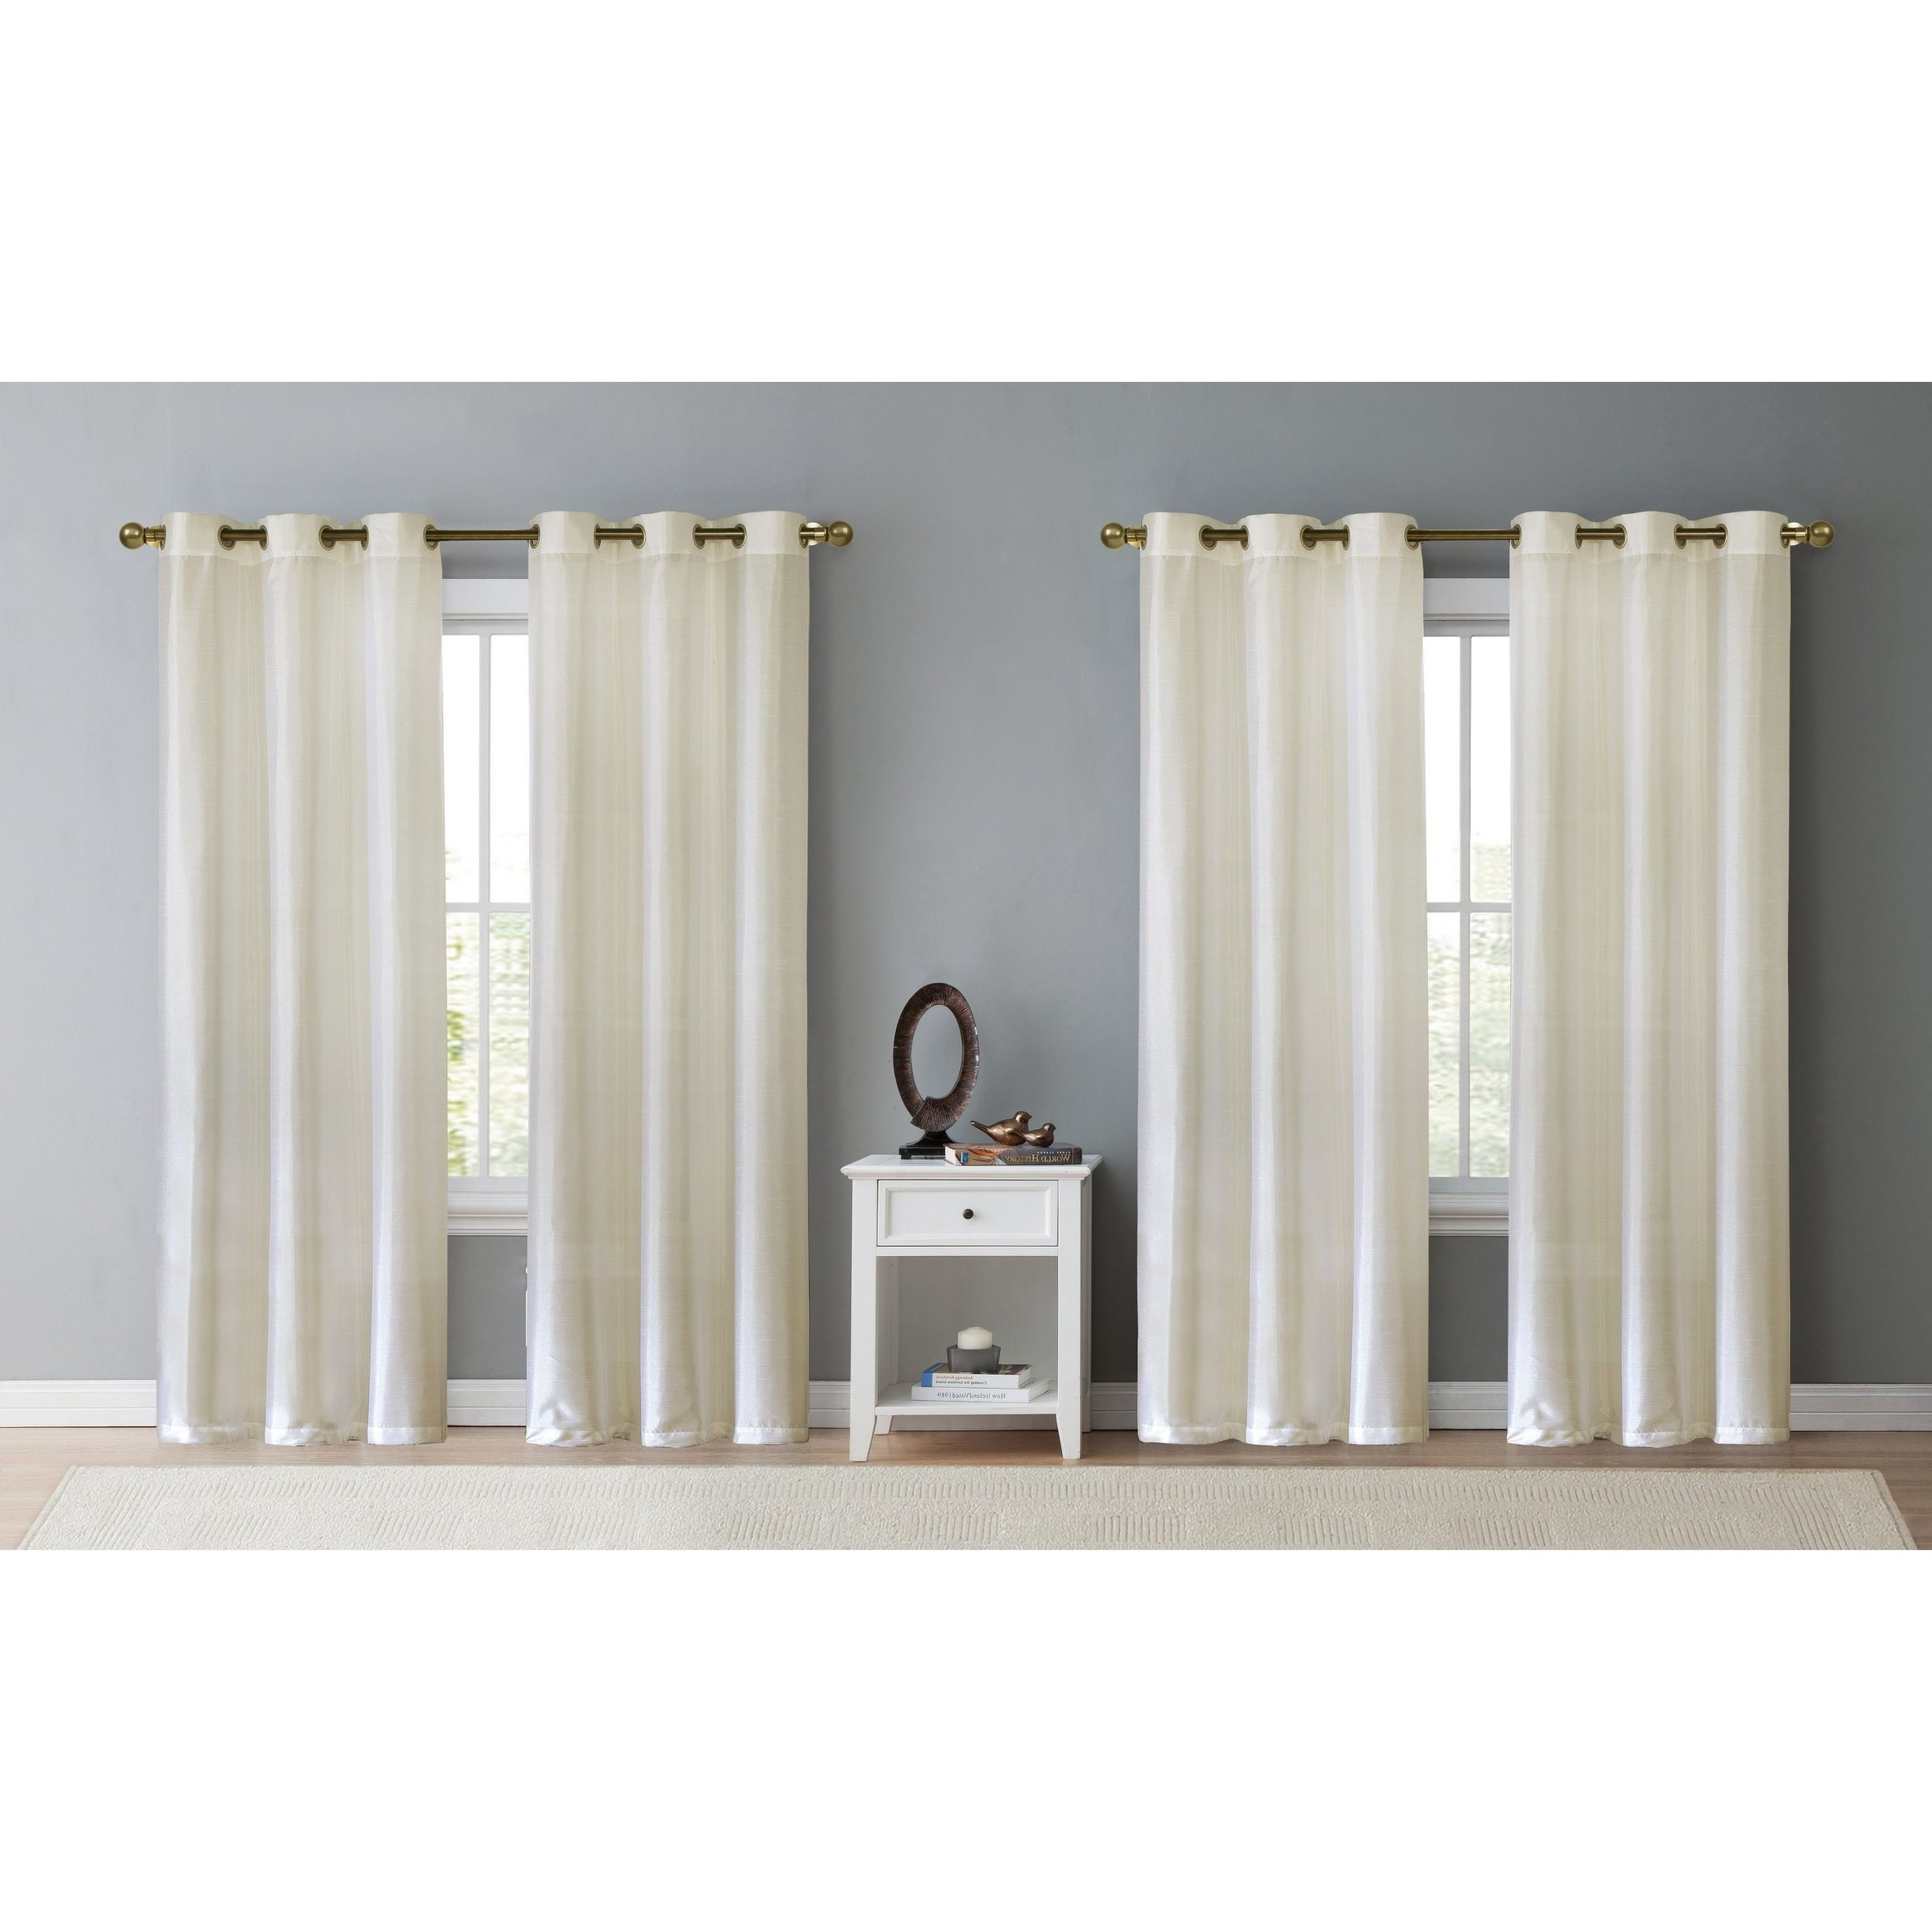 Most Popular Details About Copper Grove Chausy Faux Silk Grommet Panel (set Of 4) Throughout Copper Grove Fulgence Faux Silk Grommet Top Panel Curtains (View 17 of 20)